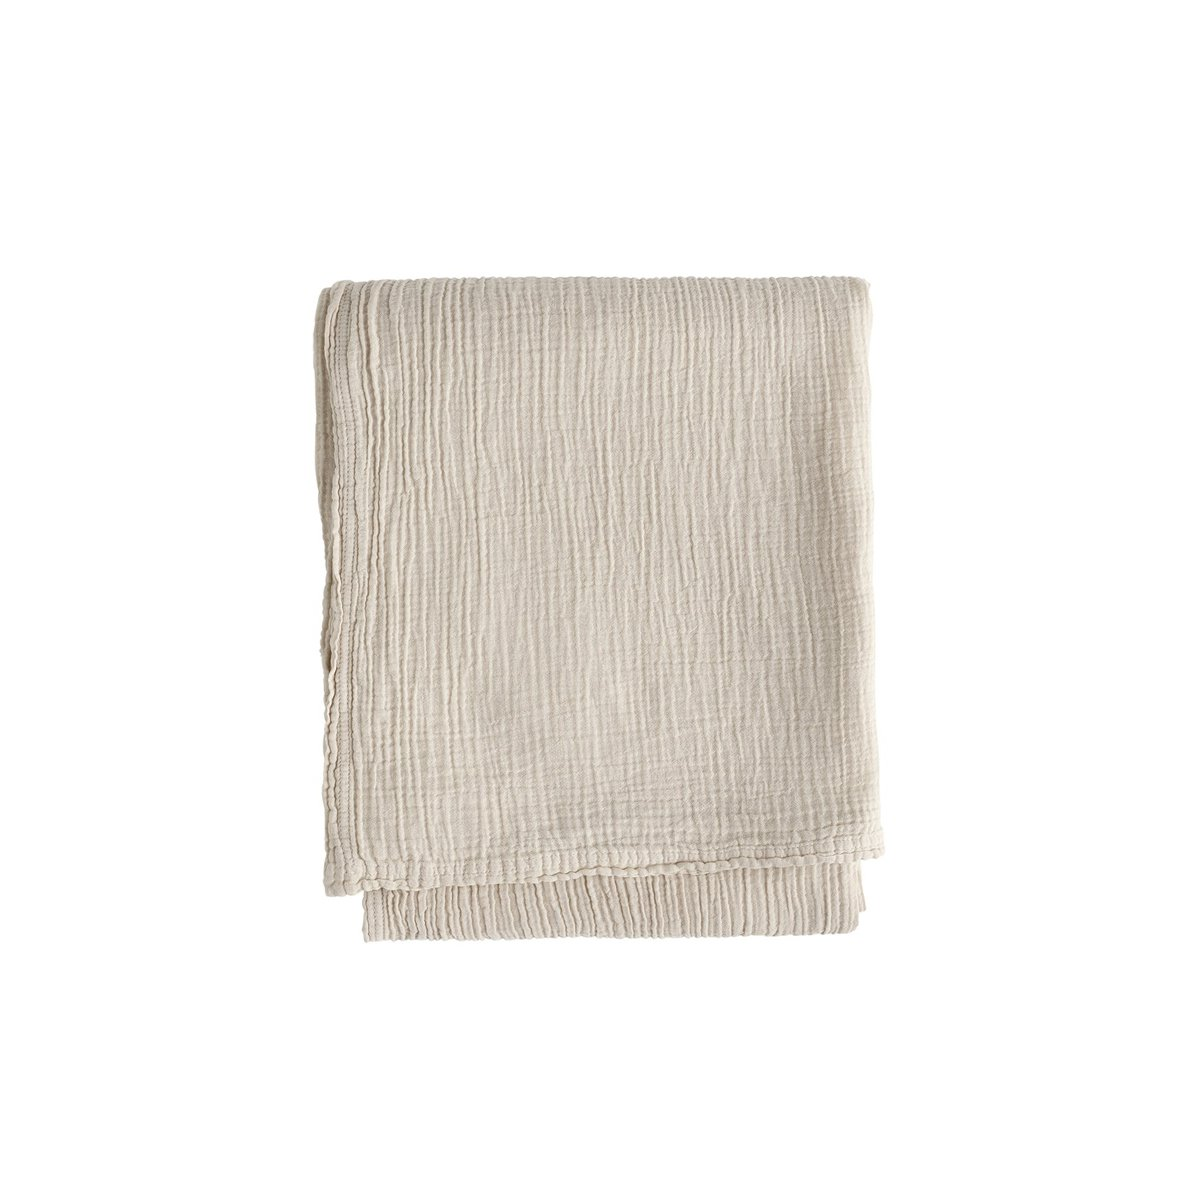 GAUZETHROW140-SAND.jpg